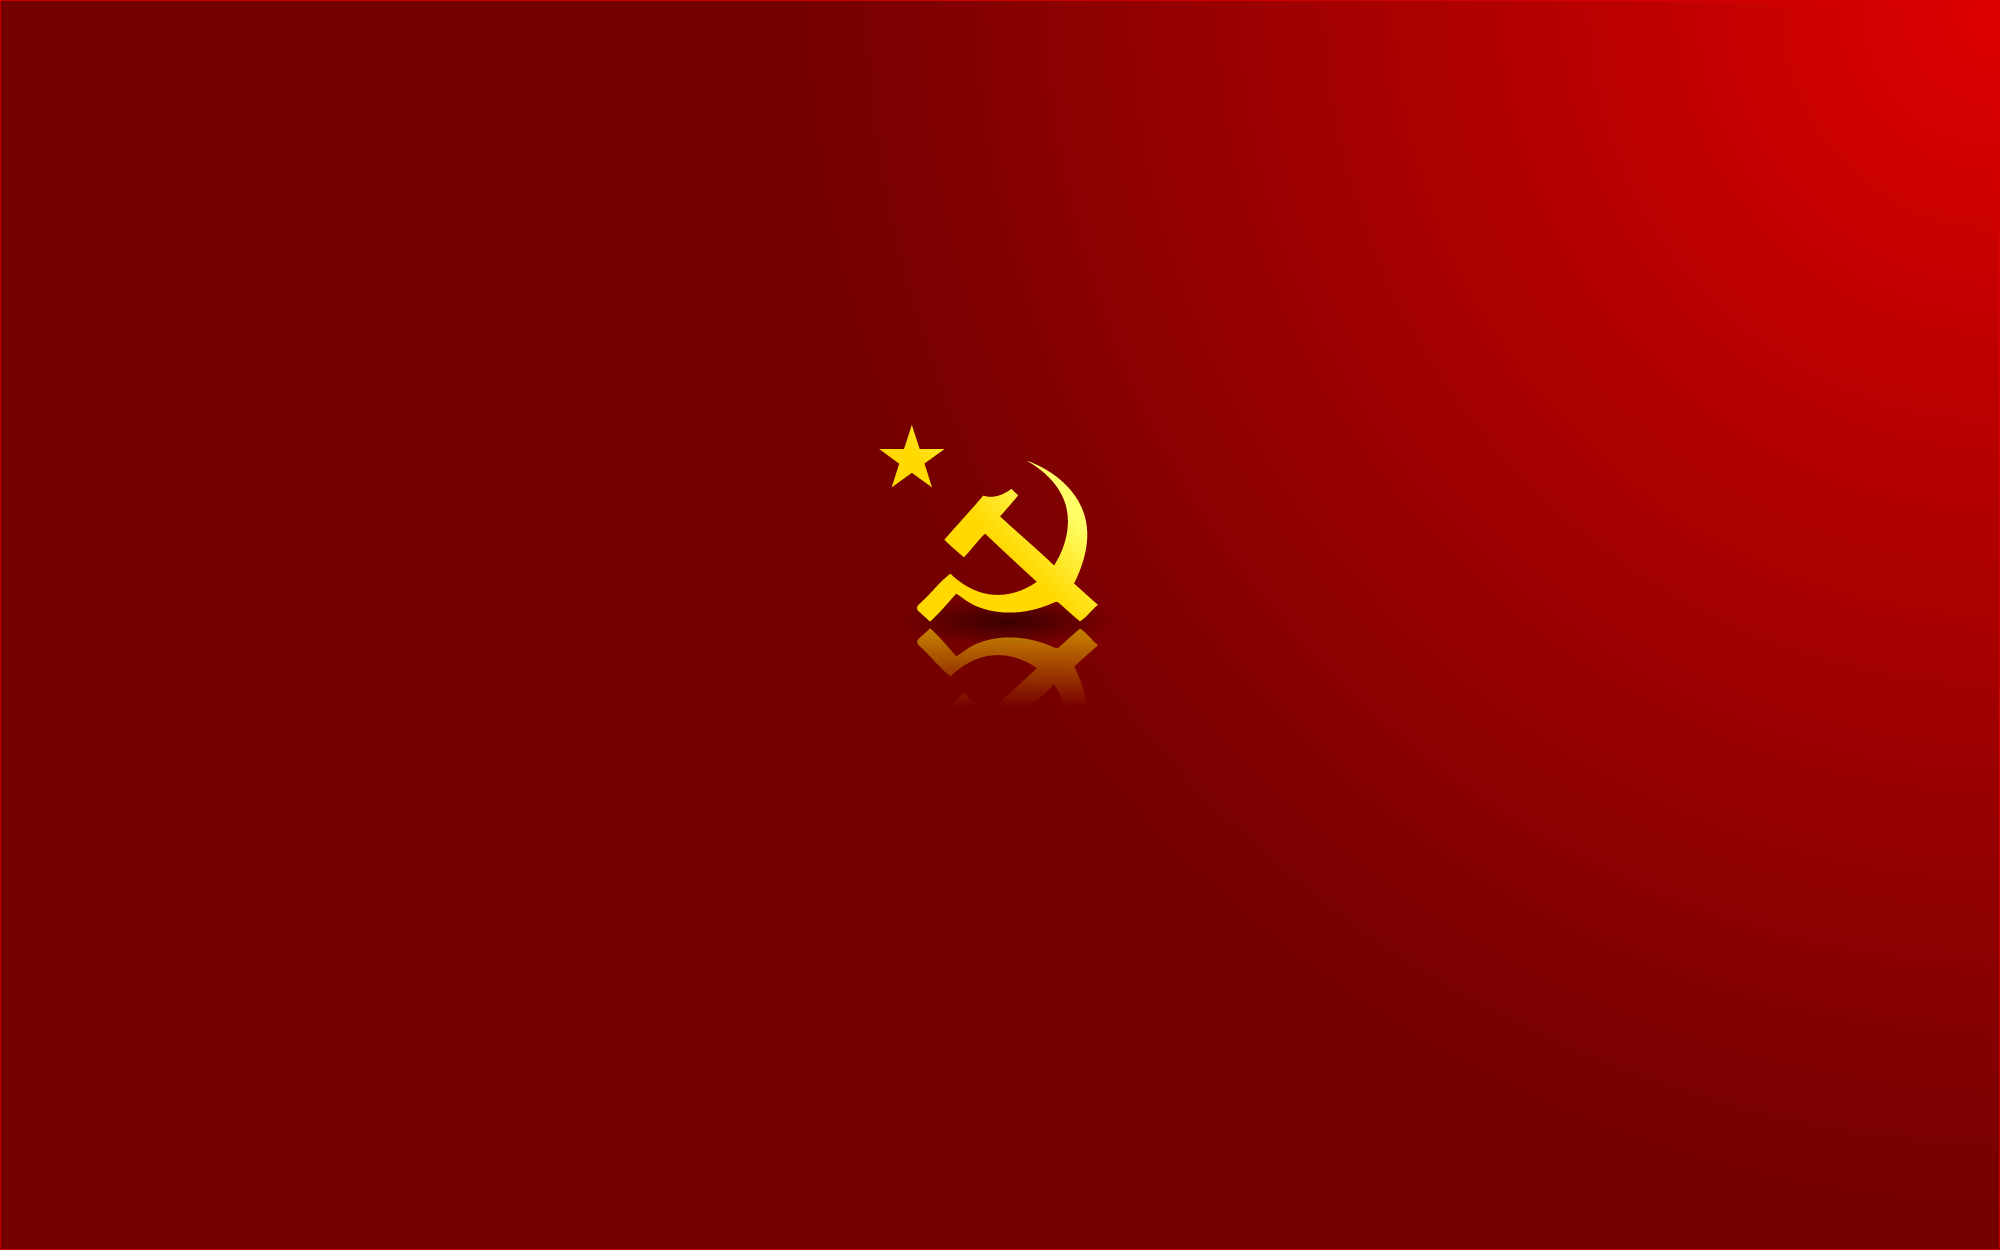 Soviet wallpaper hd wallpapersafari - Ussr wallpaper ...